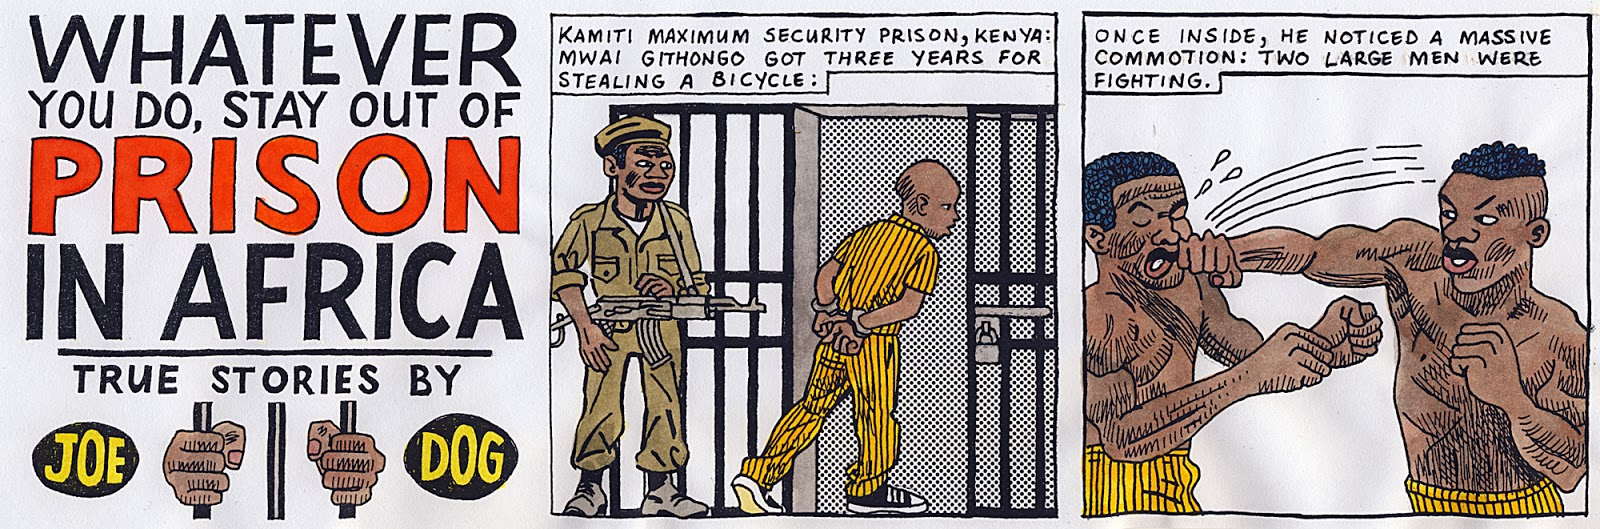 Kannemeyer My True Stories Are Normally Quite Accurate In The Case Of Prison In Africa The Incidents Are Based On Info Found In Local Newspapers